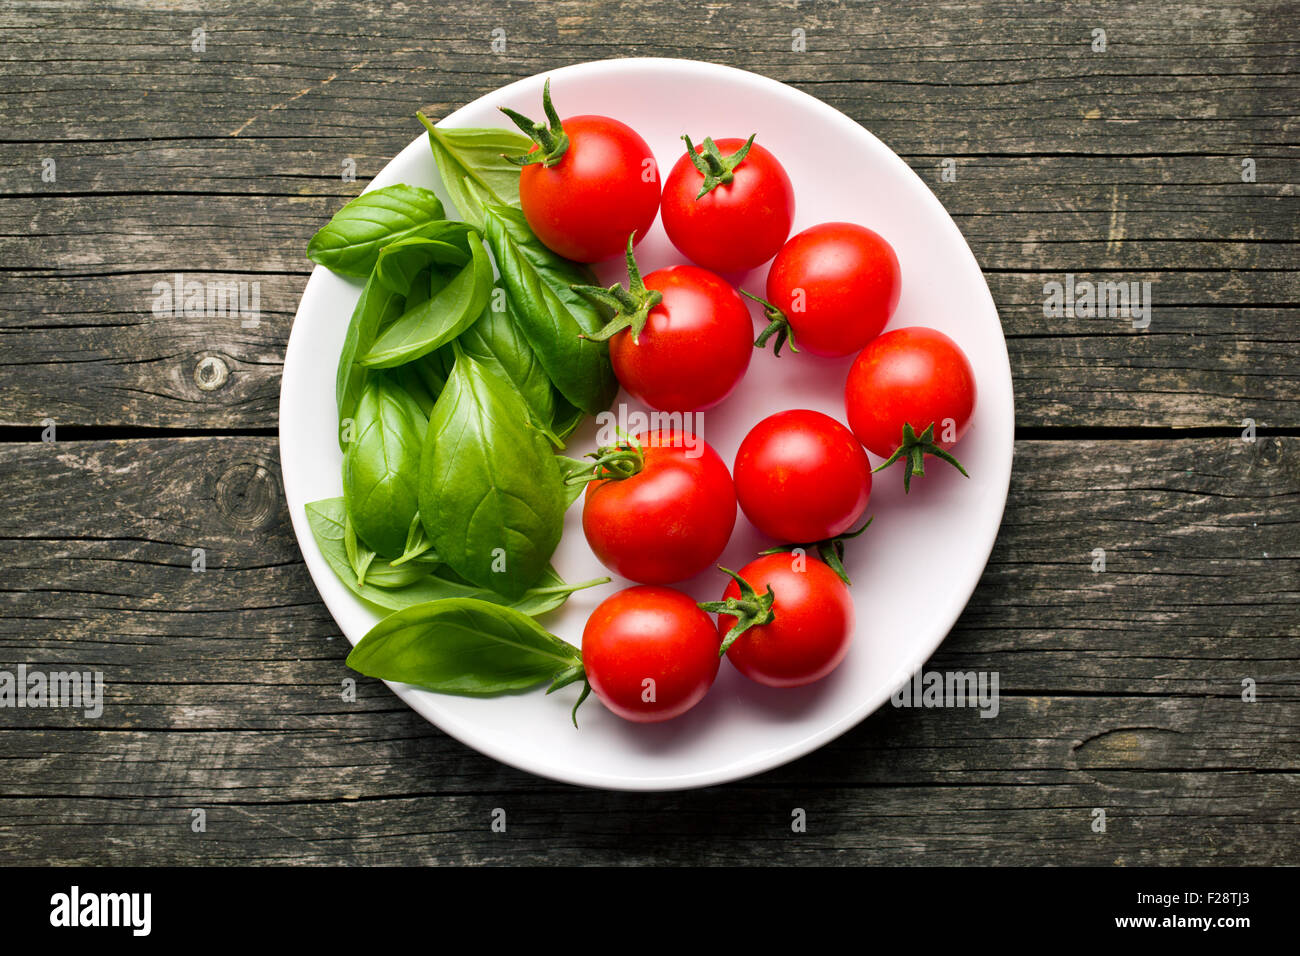 tomatoes and basil leaves on plate - Stock Image